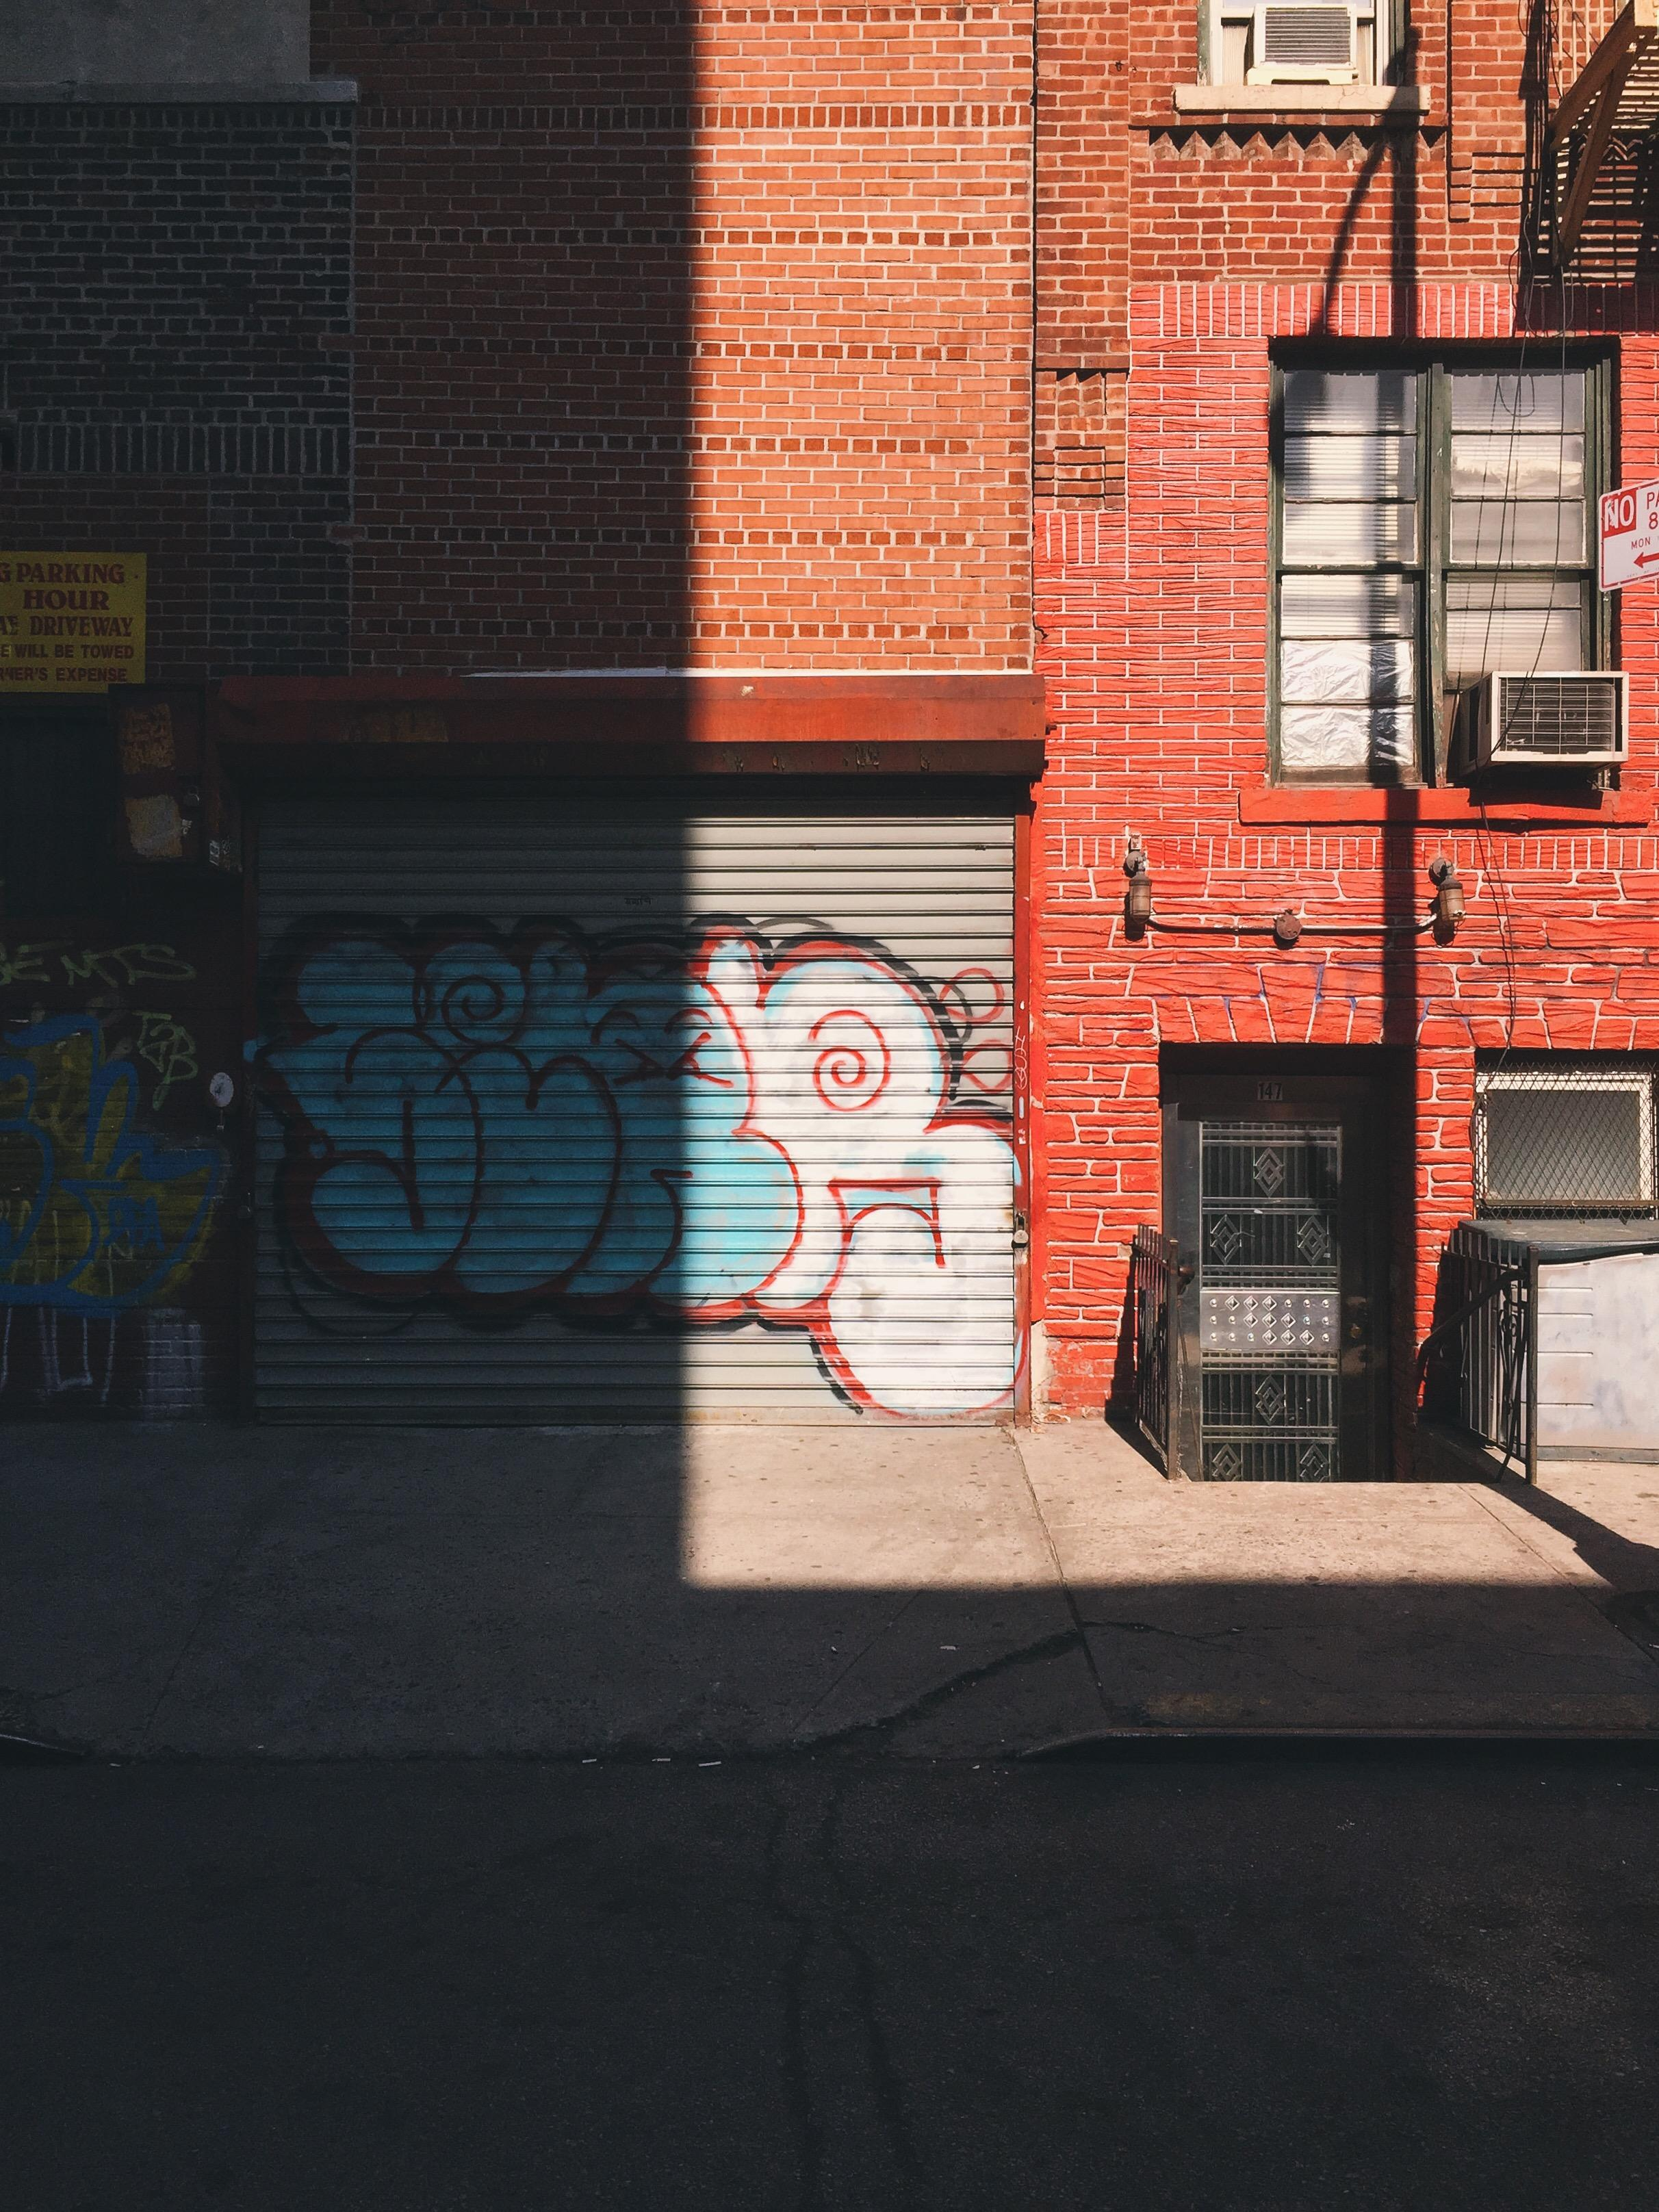 A day in Manhattan - image 3 - student project